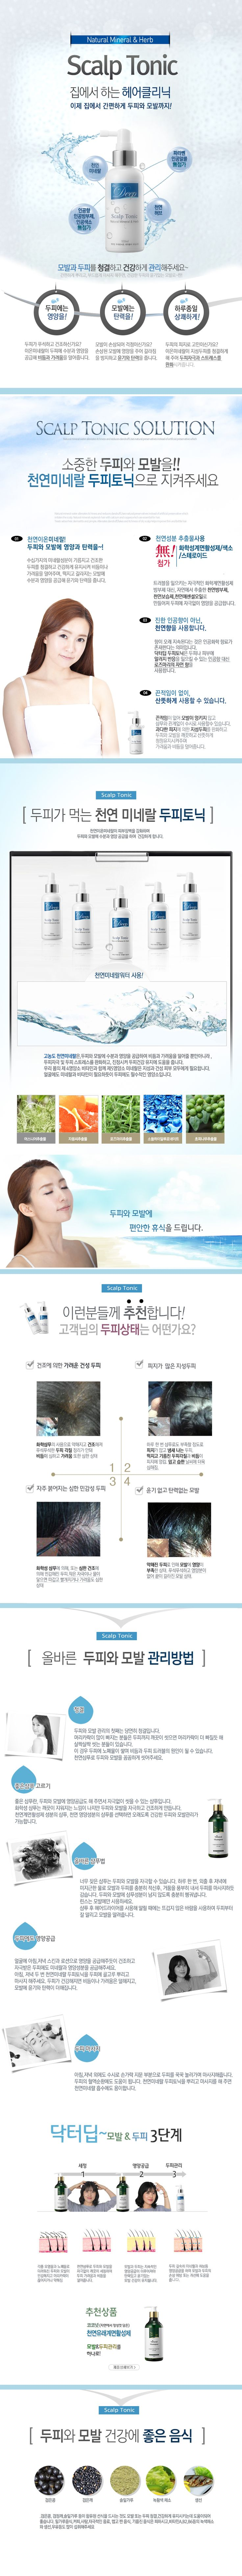 Scalp Tonic(Product page Design)